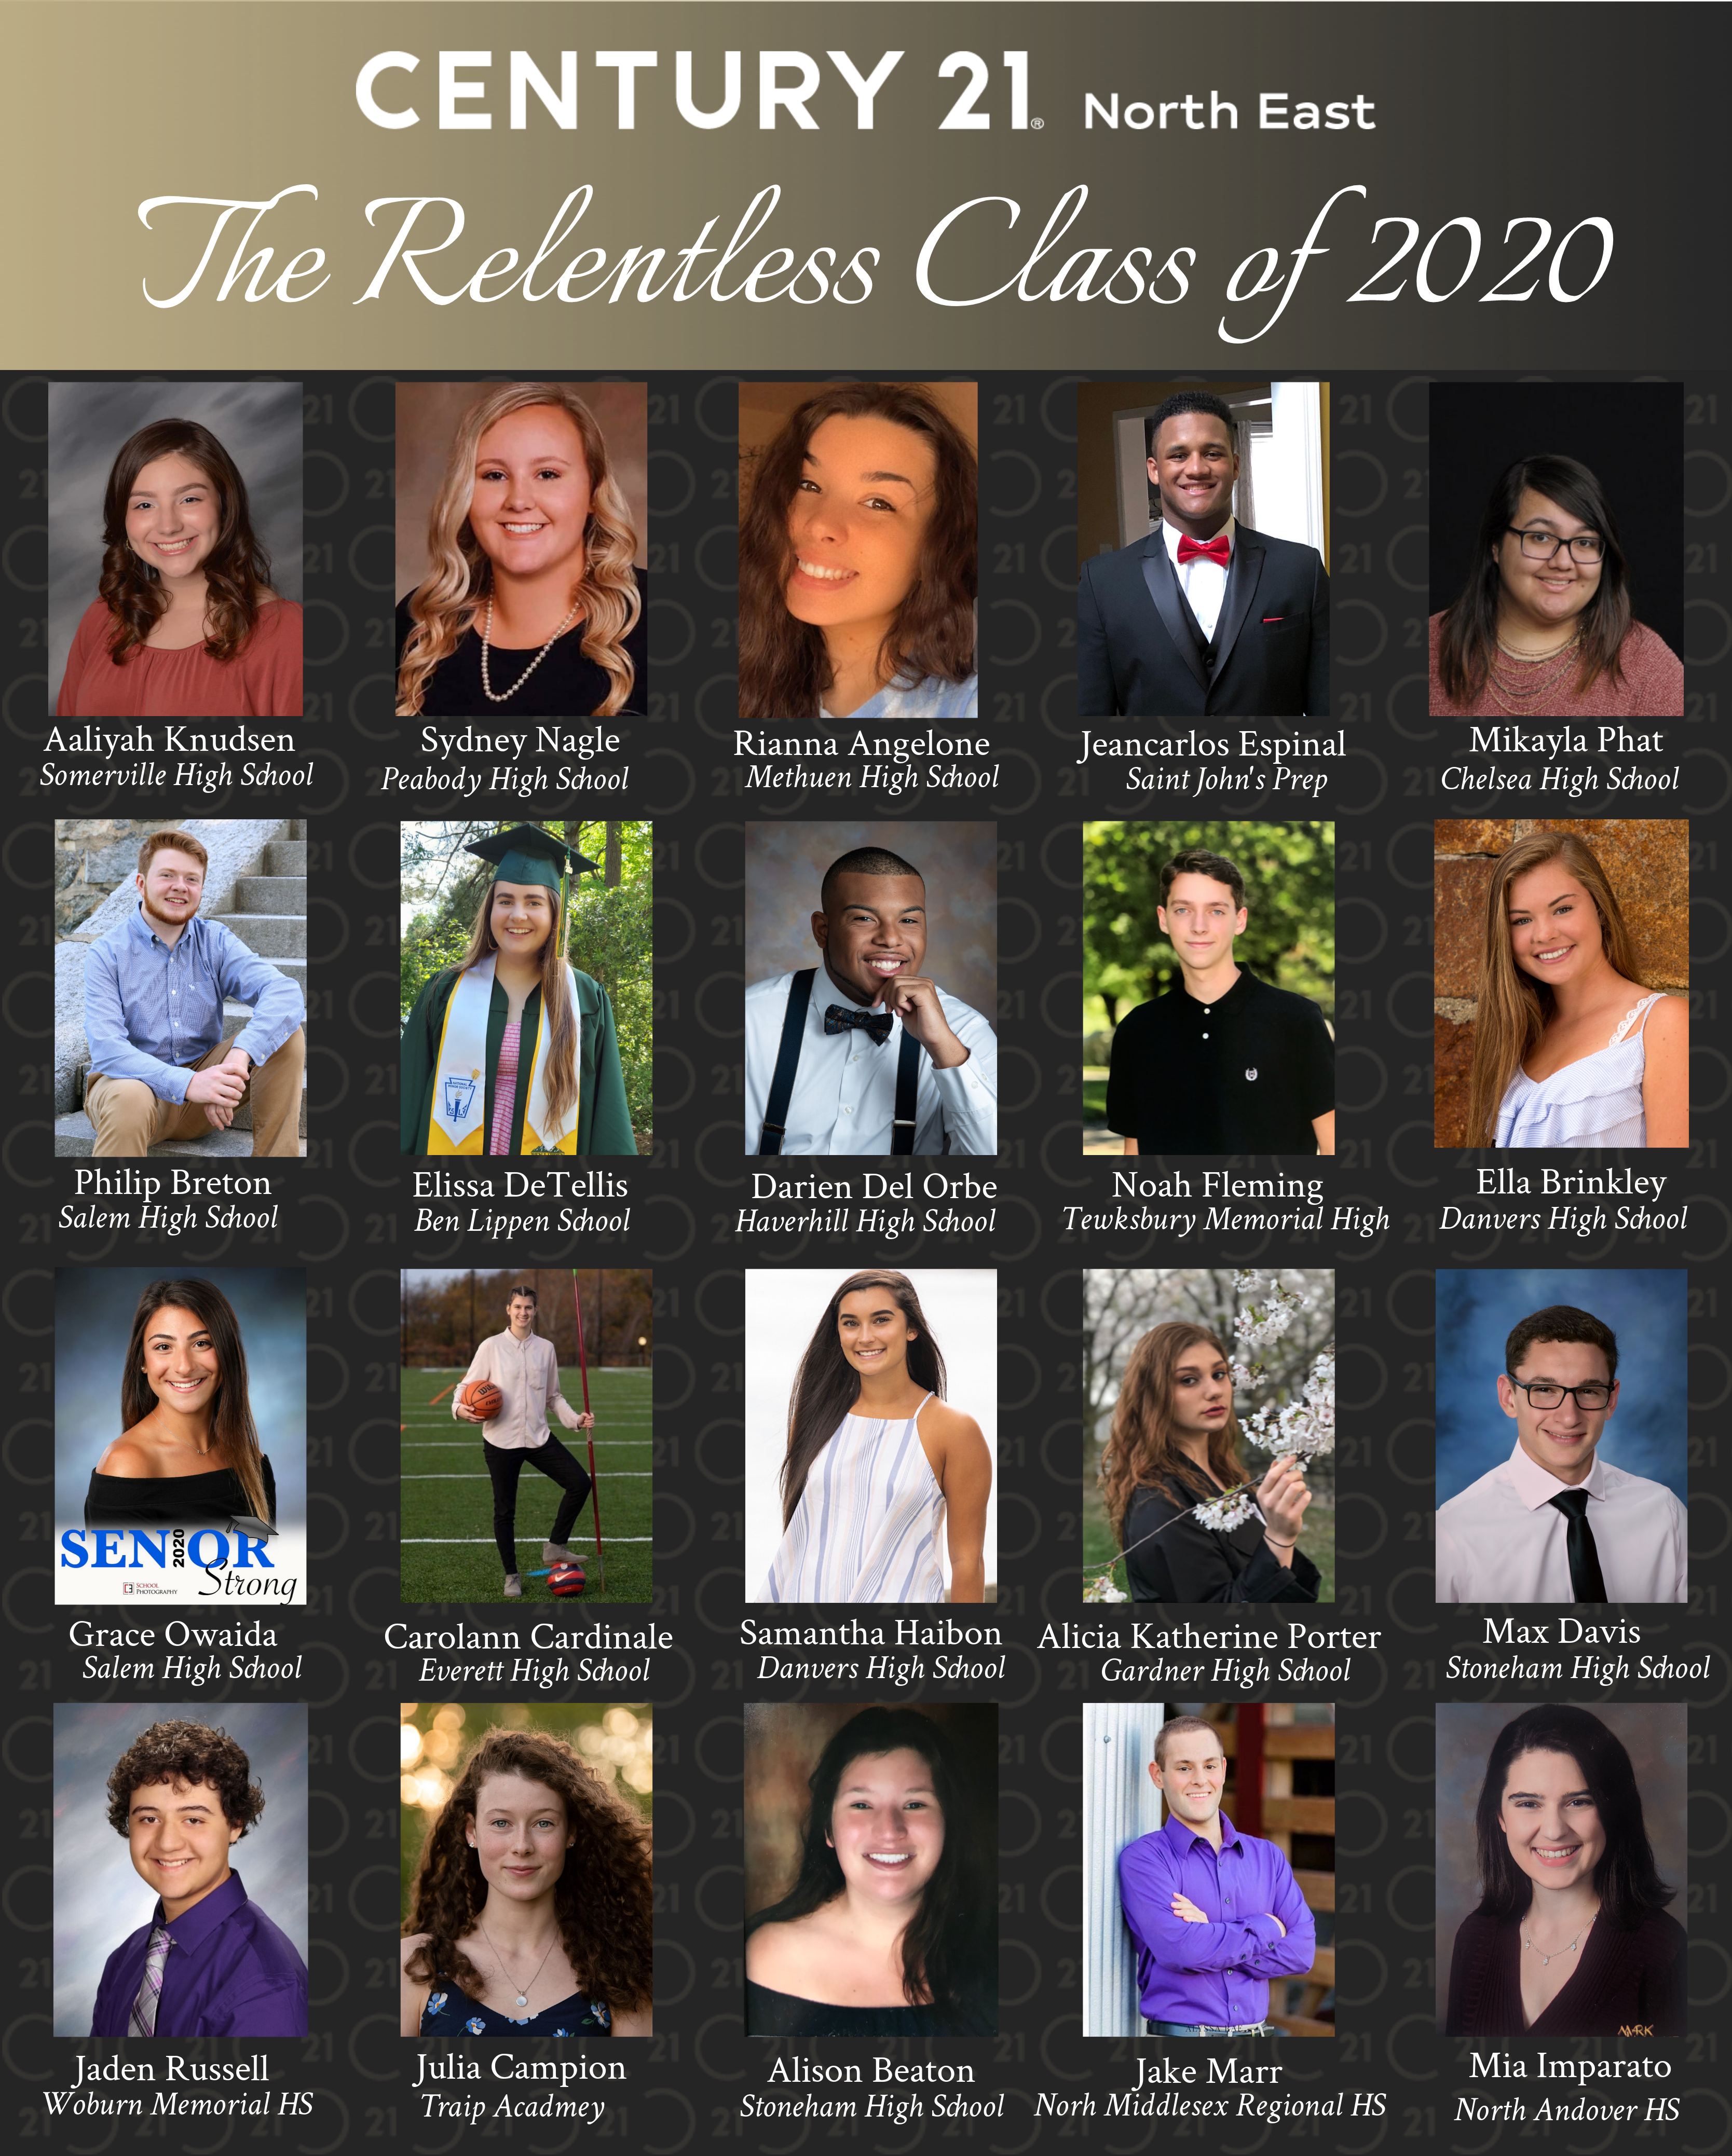 CENTURY 21 North East: The Relentless Class of 2020